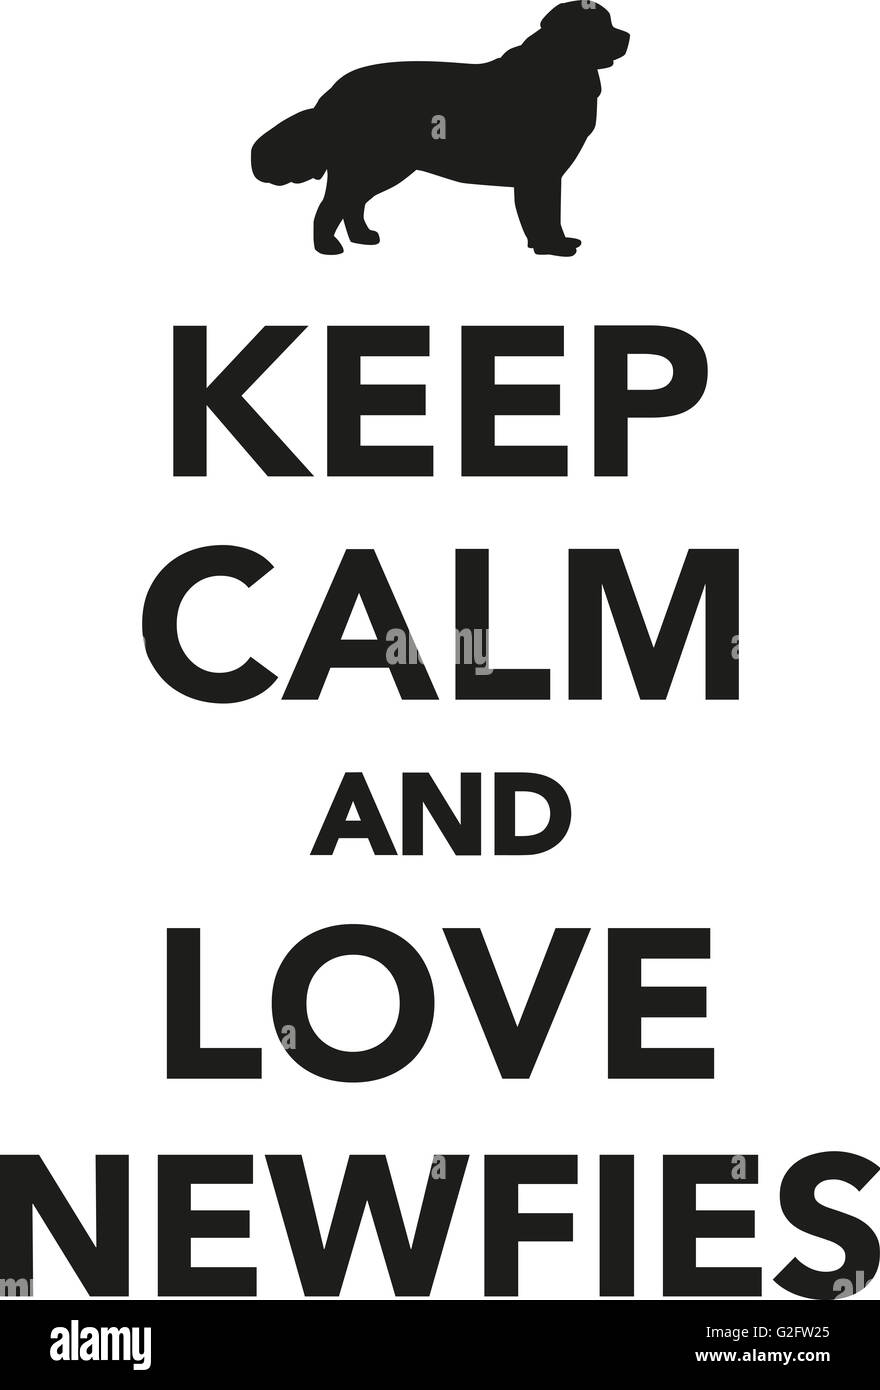 Keep calm and love newfies - Stock Image